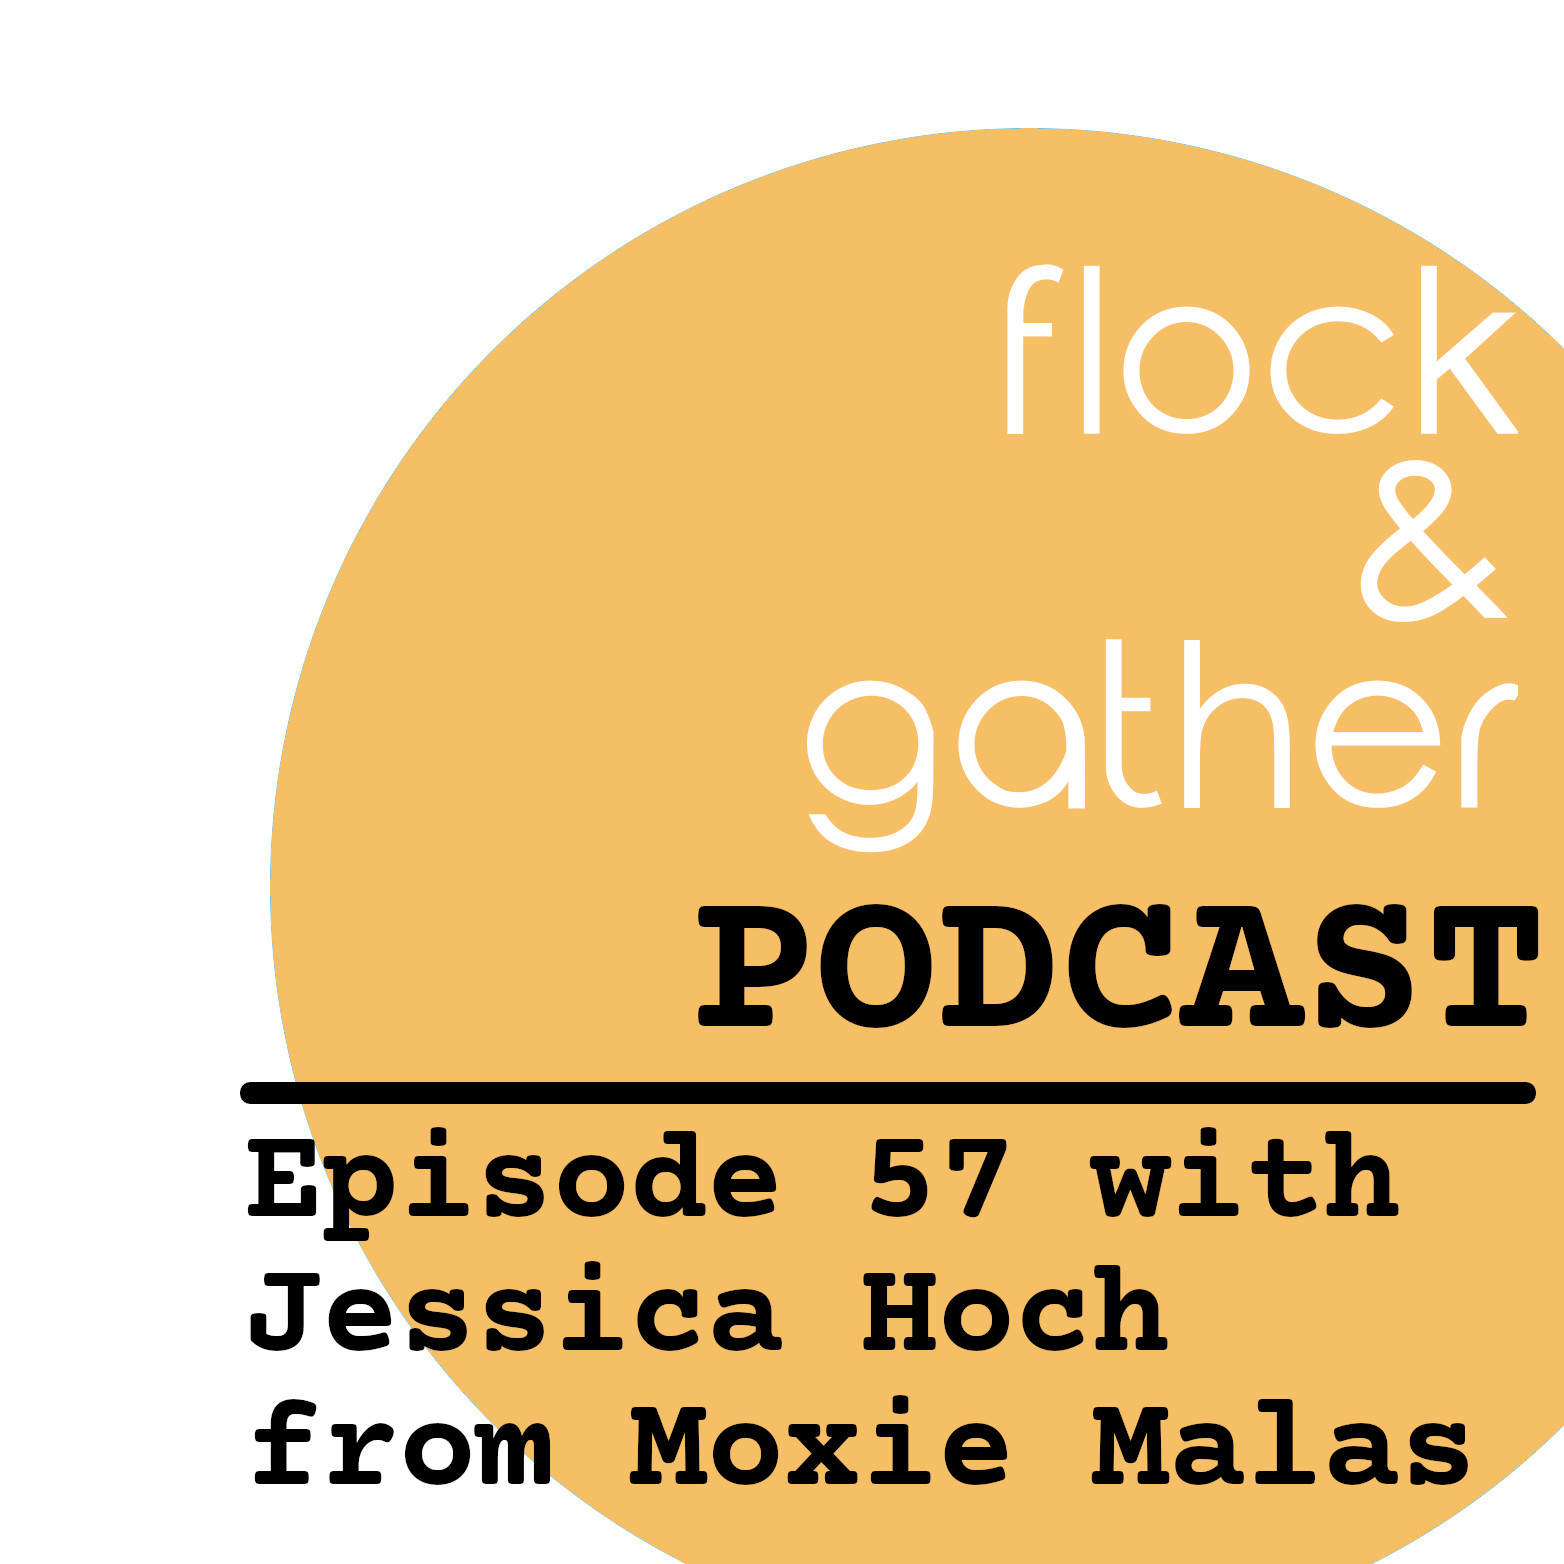 Flock and Gather...new episode with Jessica Hoch from Moxie Malas!